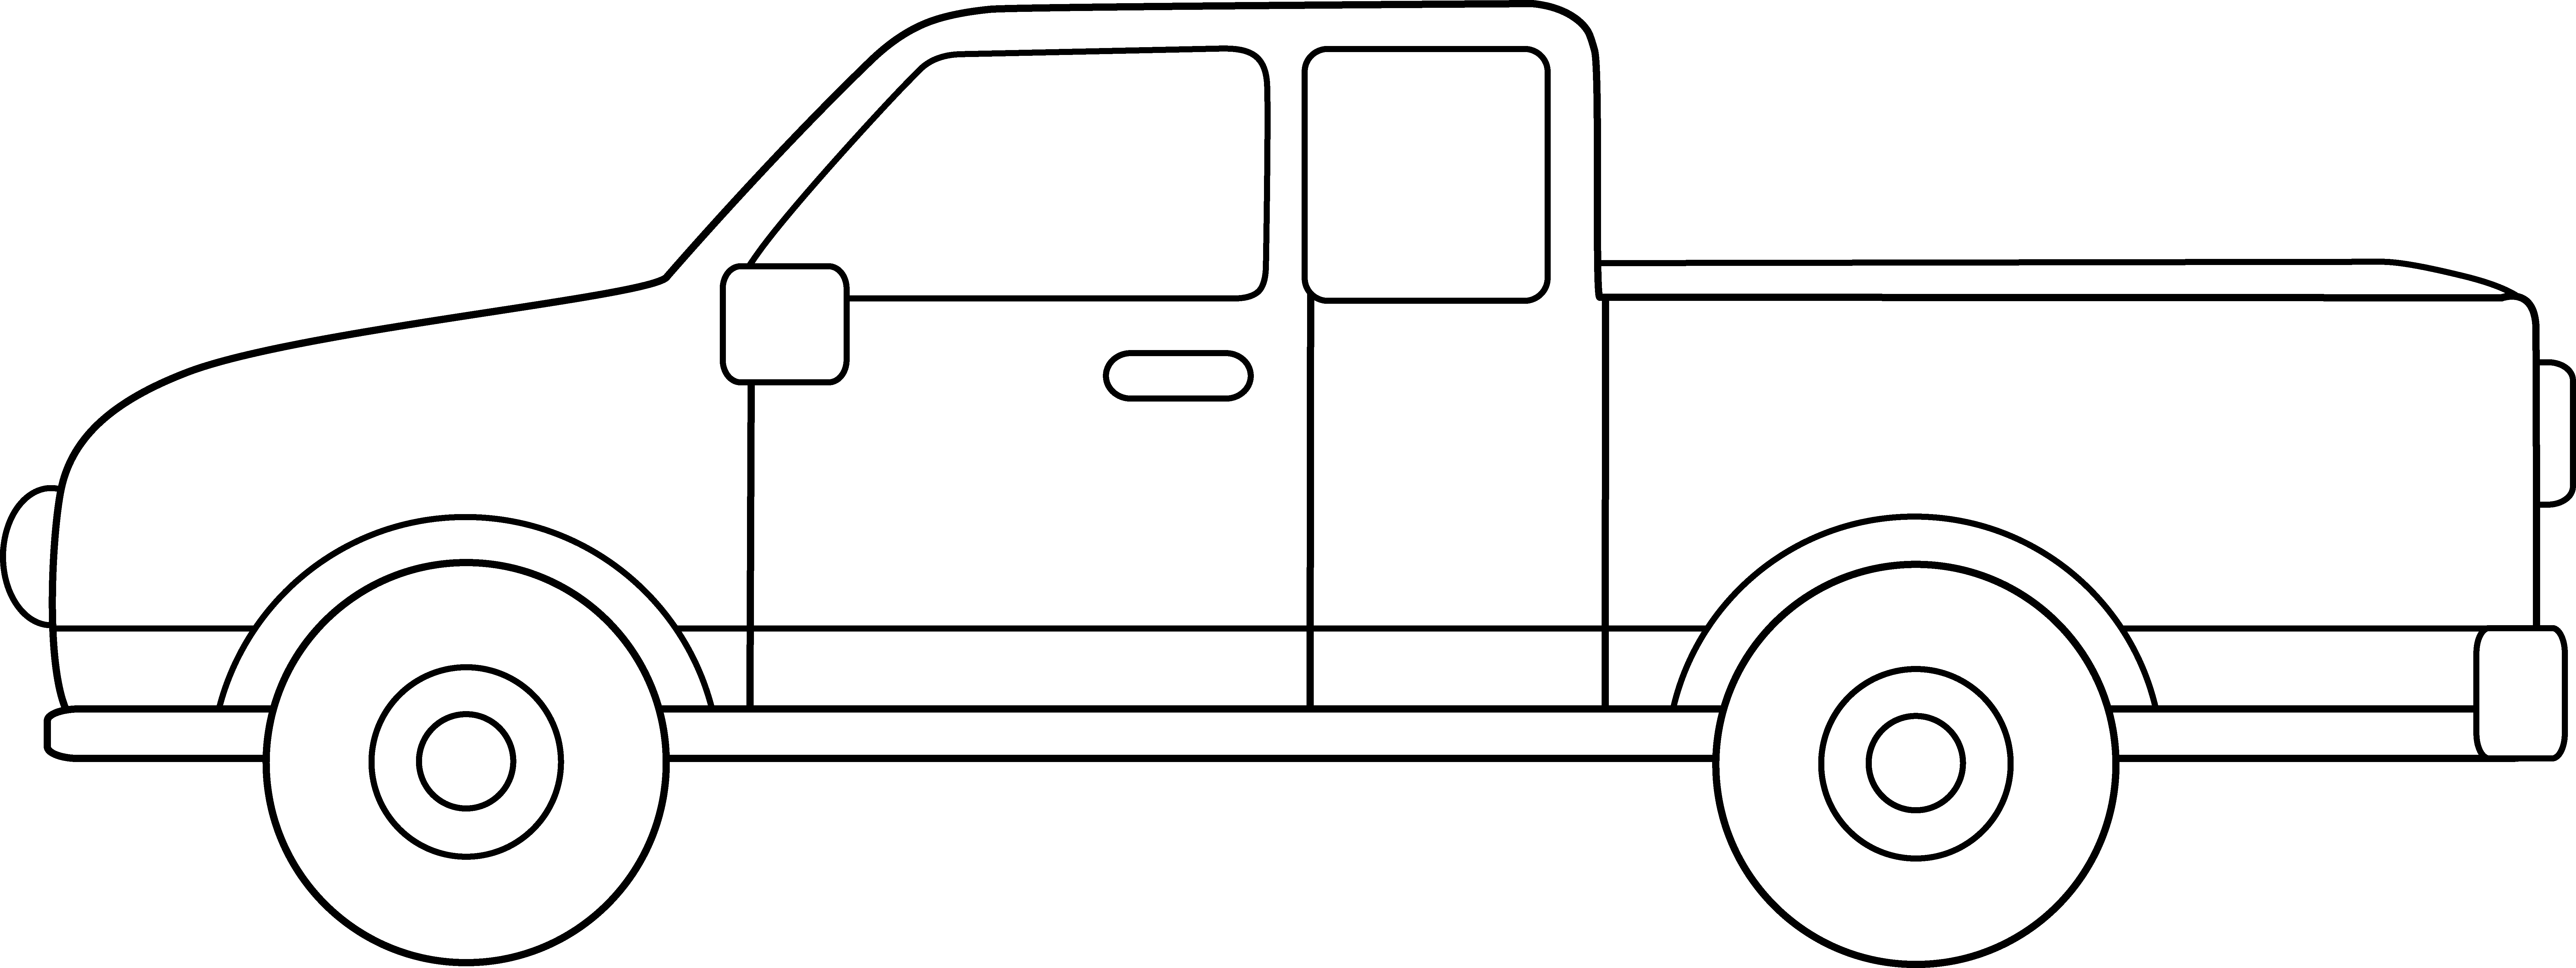 Minivan clipart black and white. Pickup truck coloring page